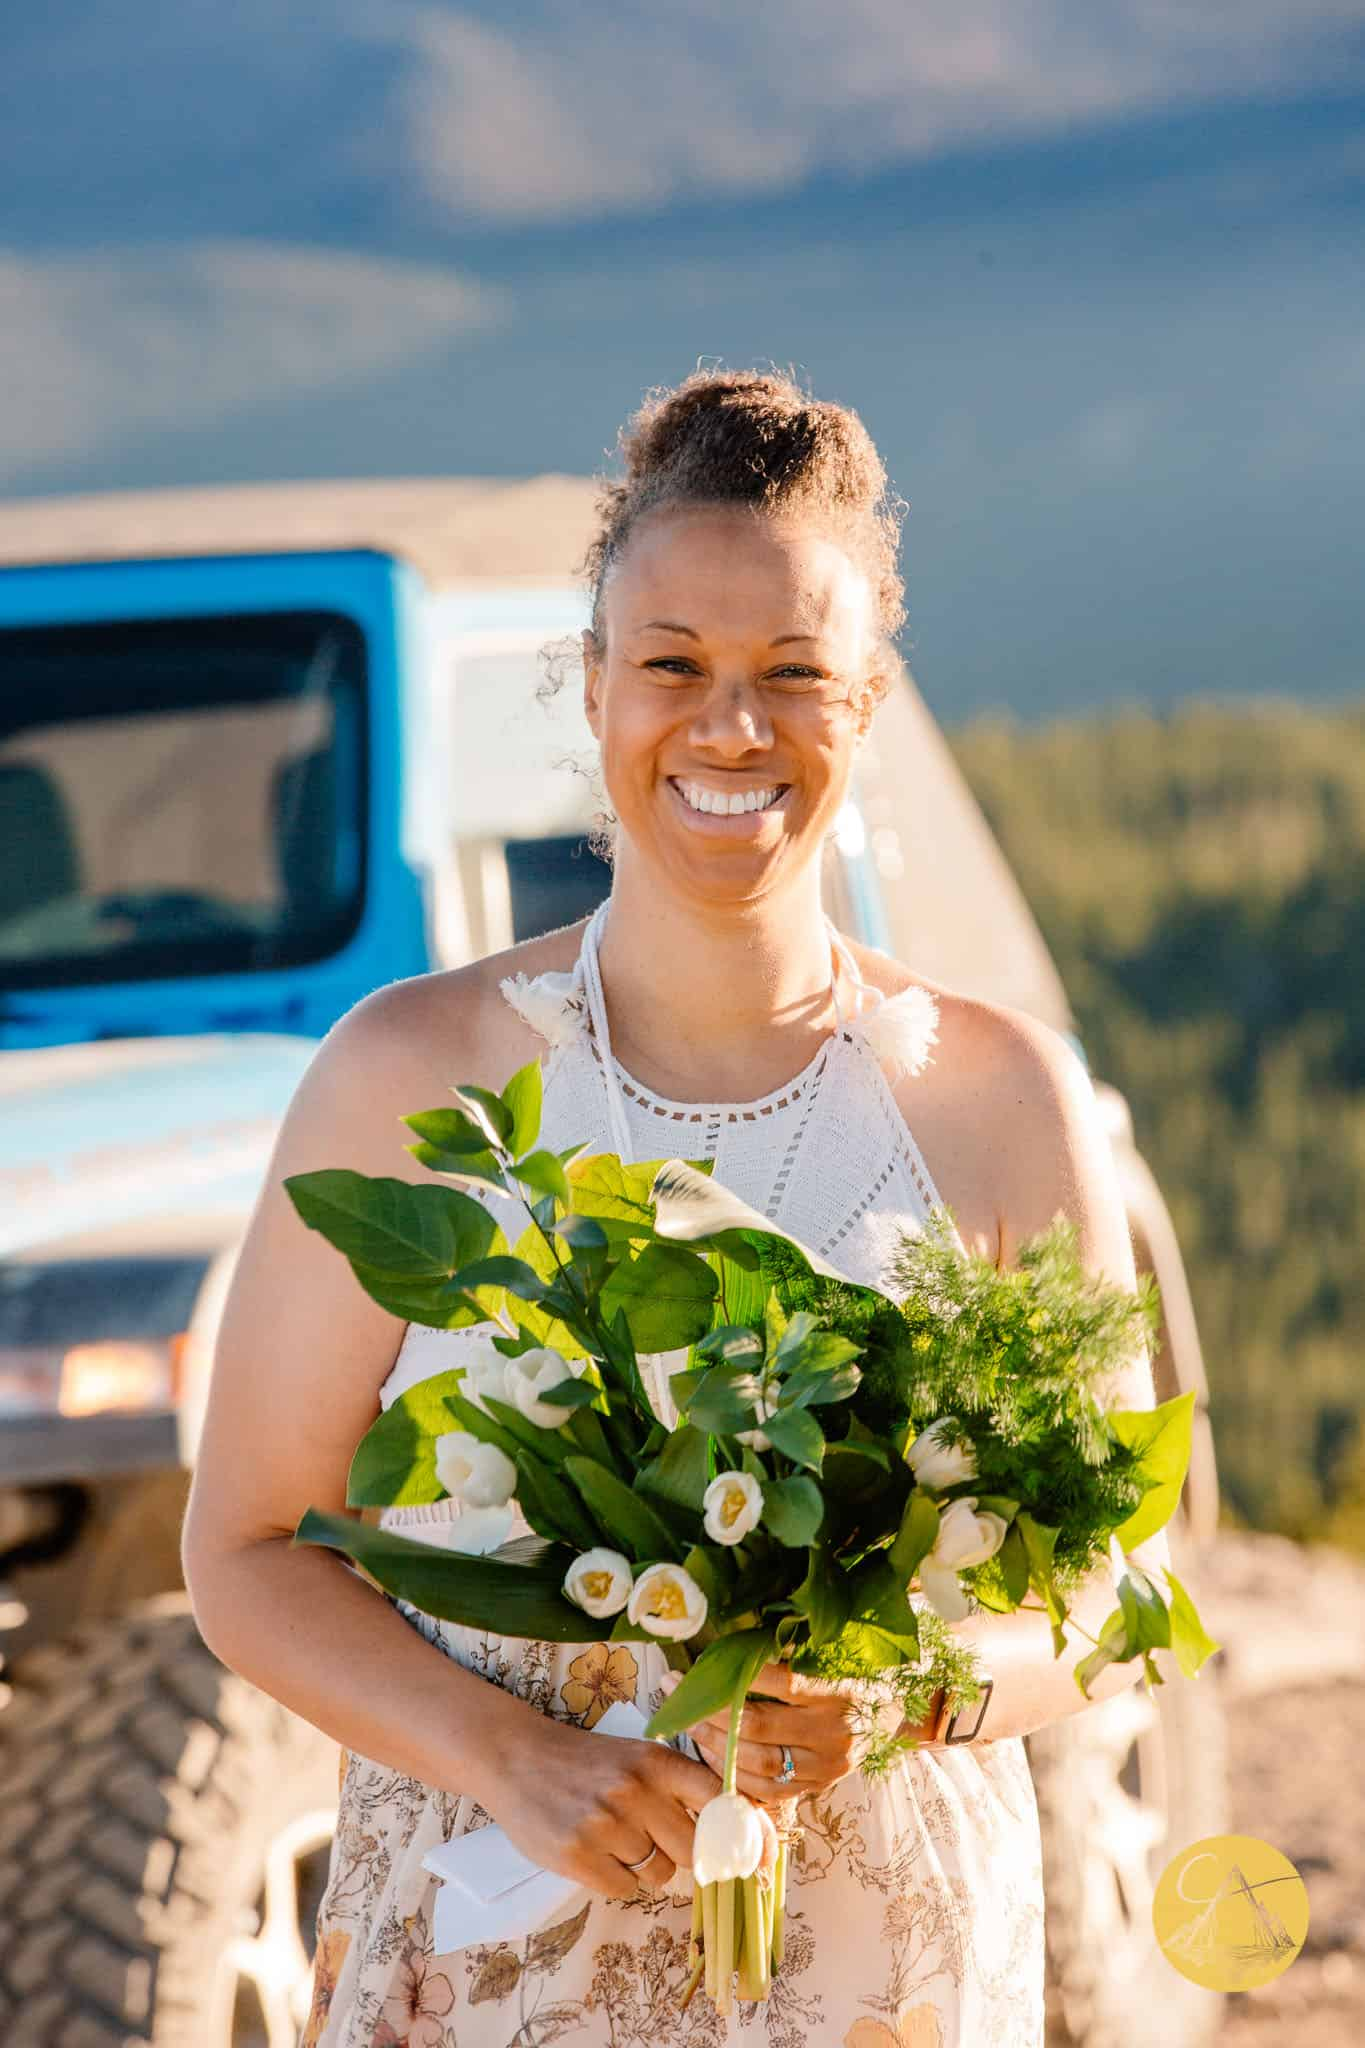 bride holding flowers at her 4x4 wedding with a jeep wrangler in the background